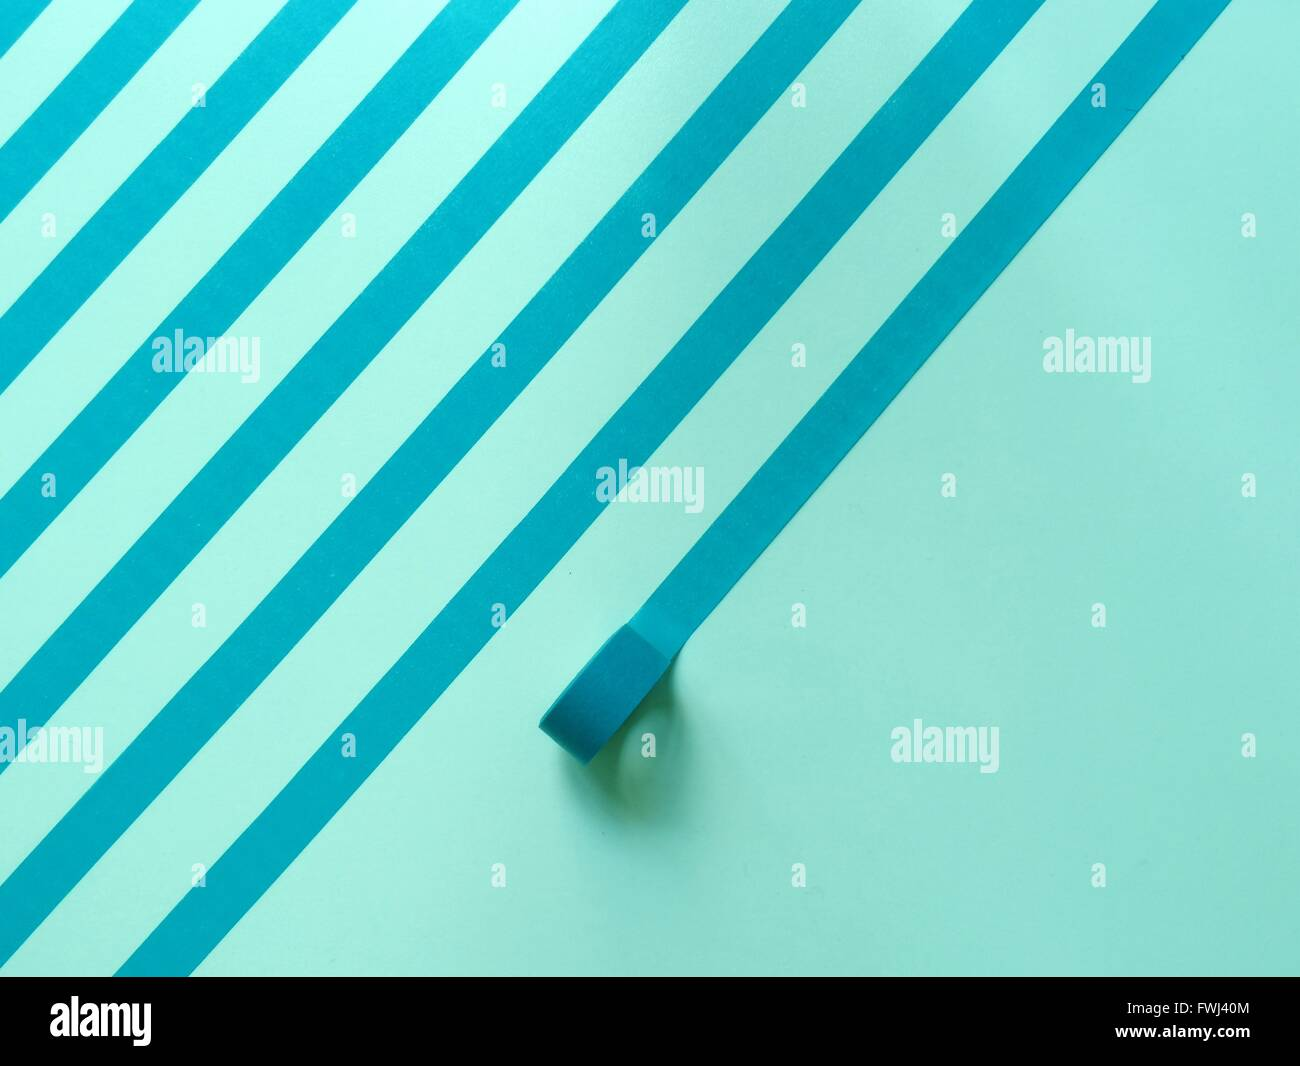 Striped Made From Adhesive Tape On Wall - Stock Image